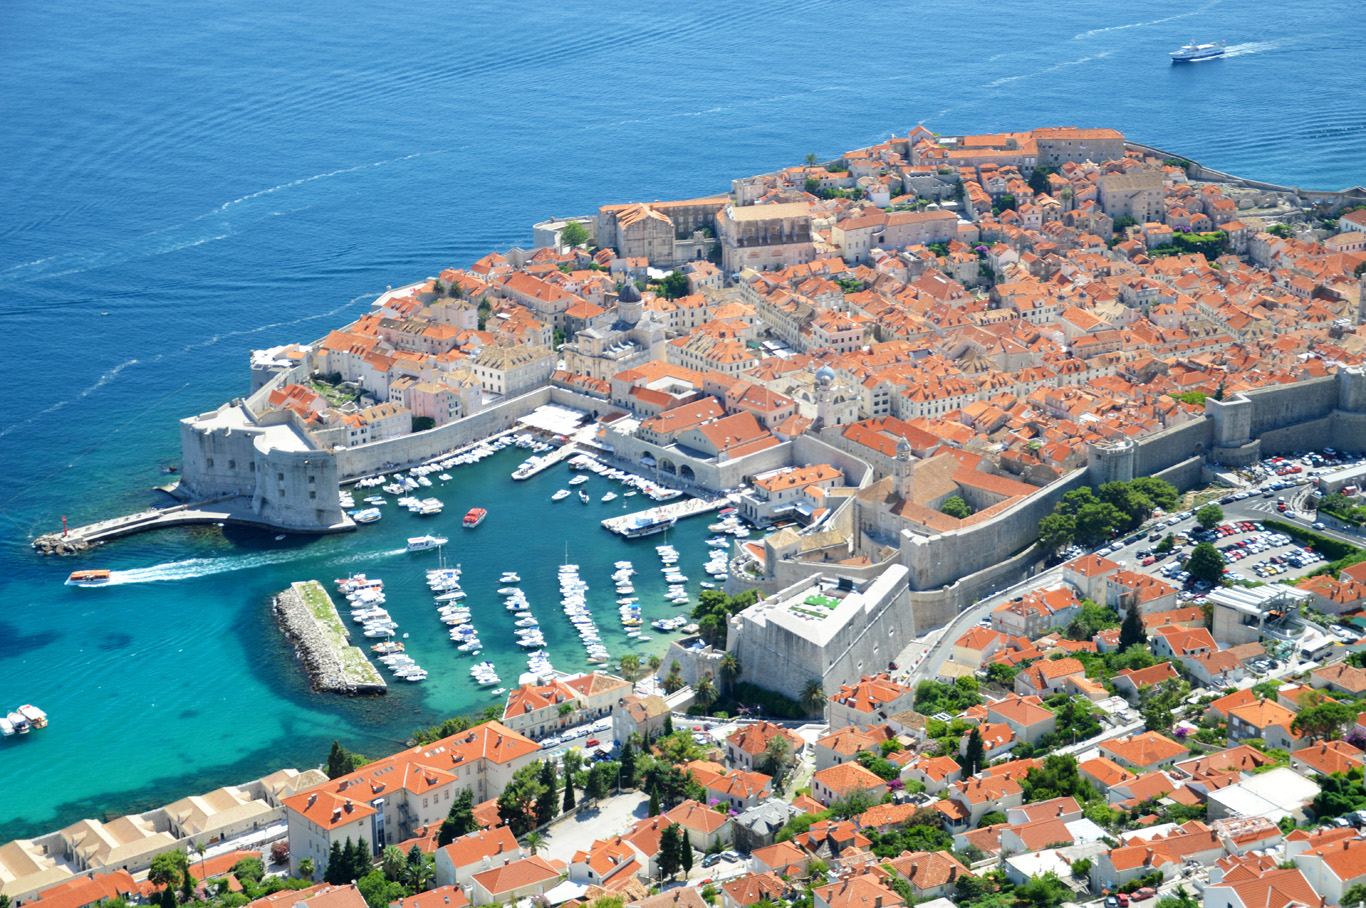 Amazing view of the entire walled old town